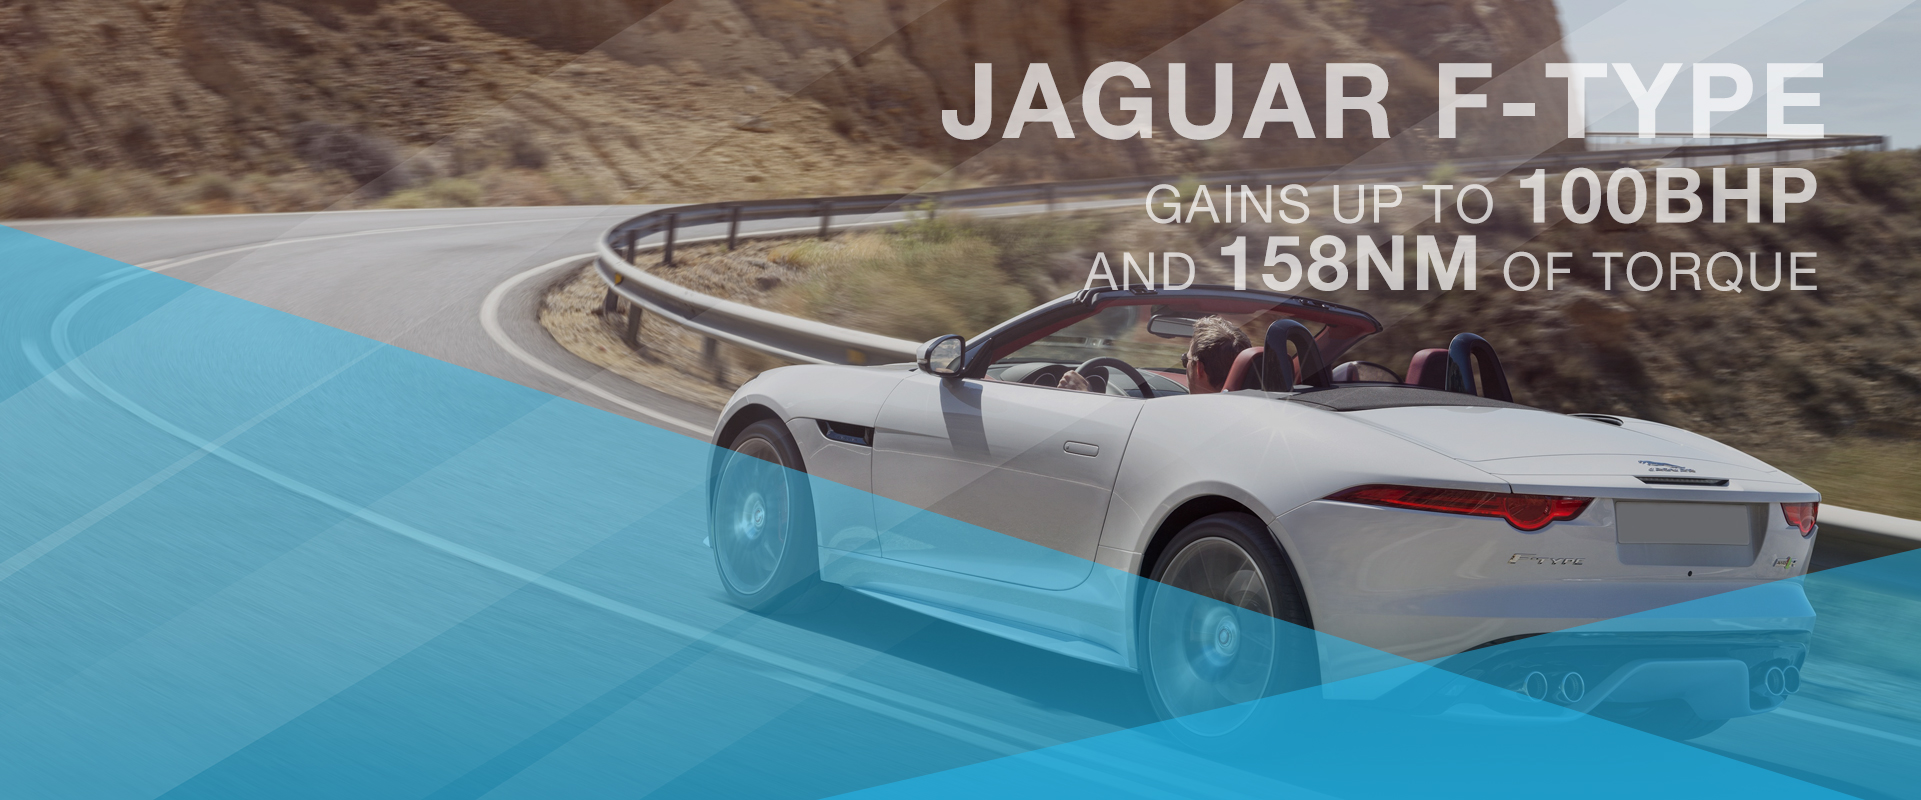 Jaguar F-Type gains up to 50BHP and 70NM of torque